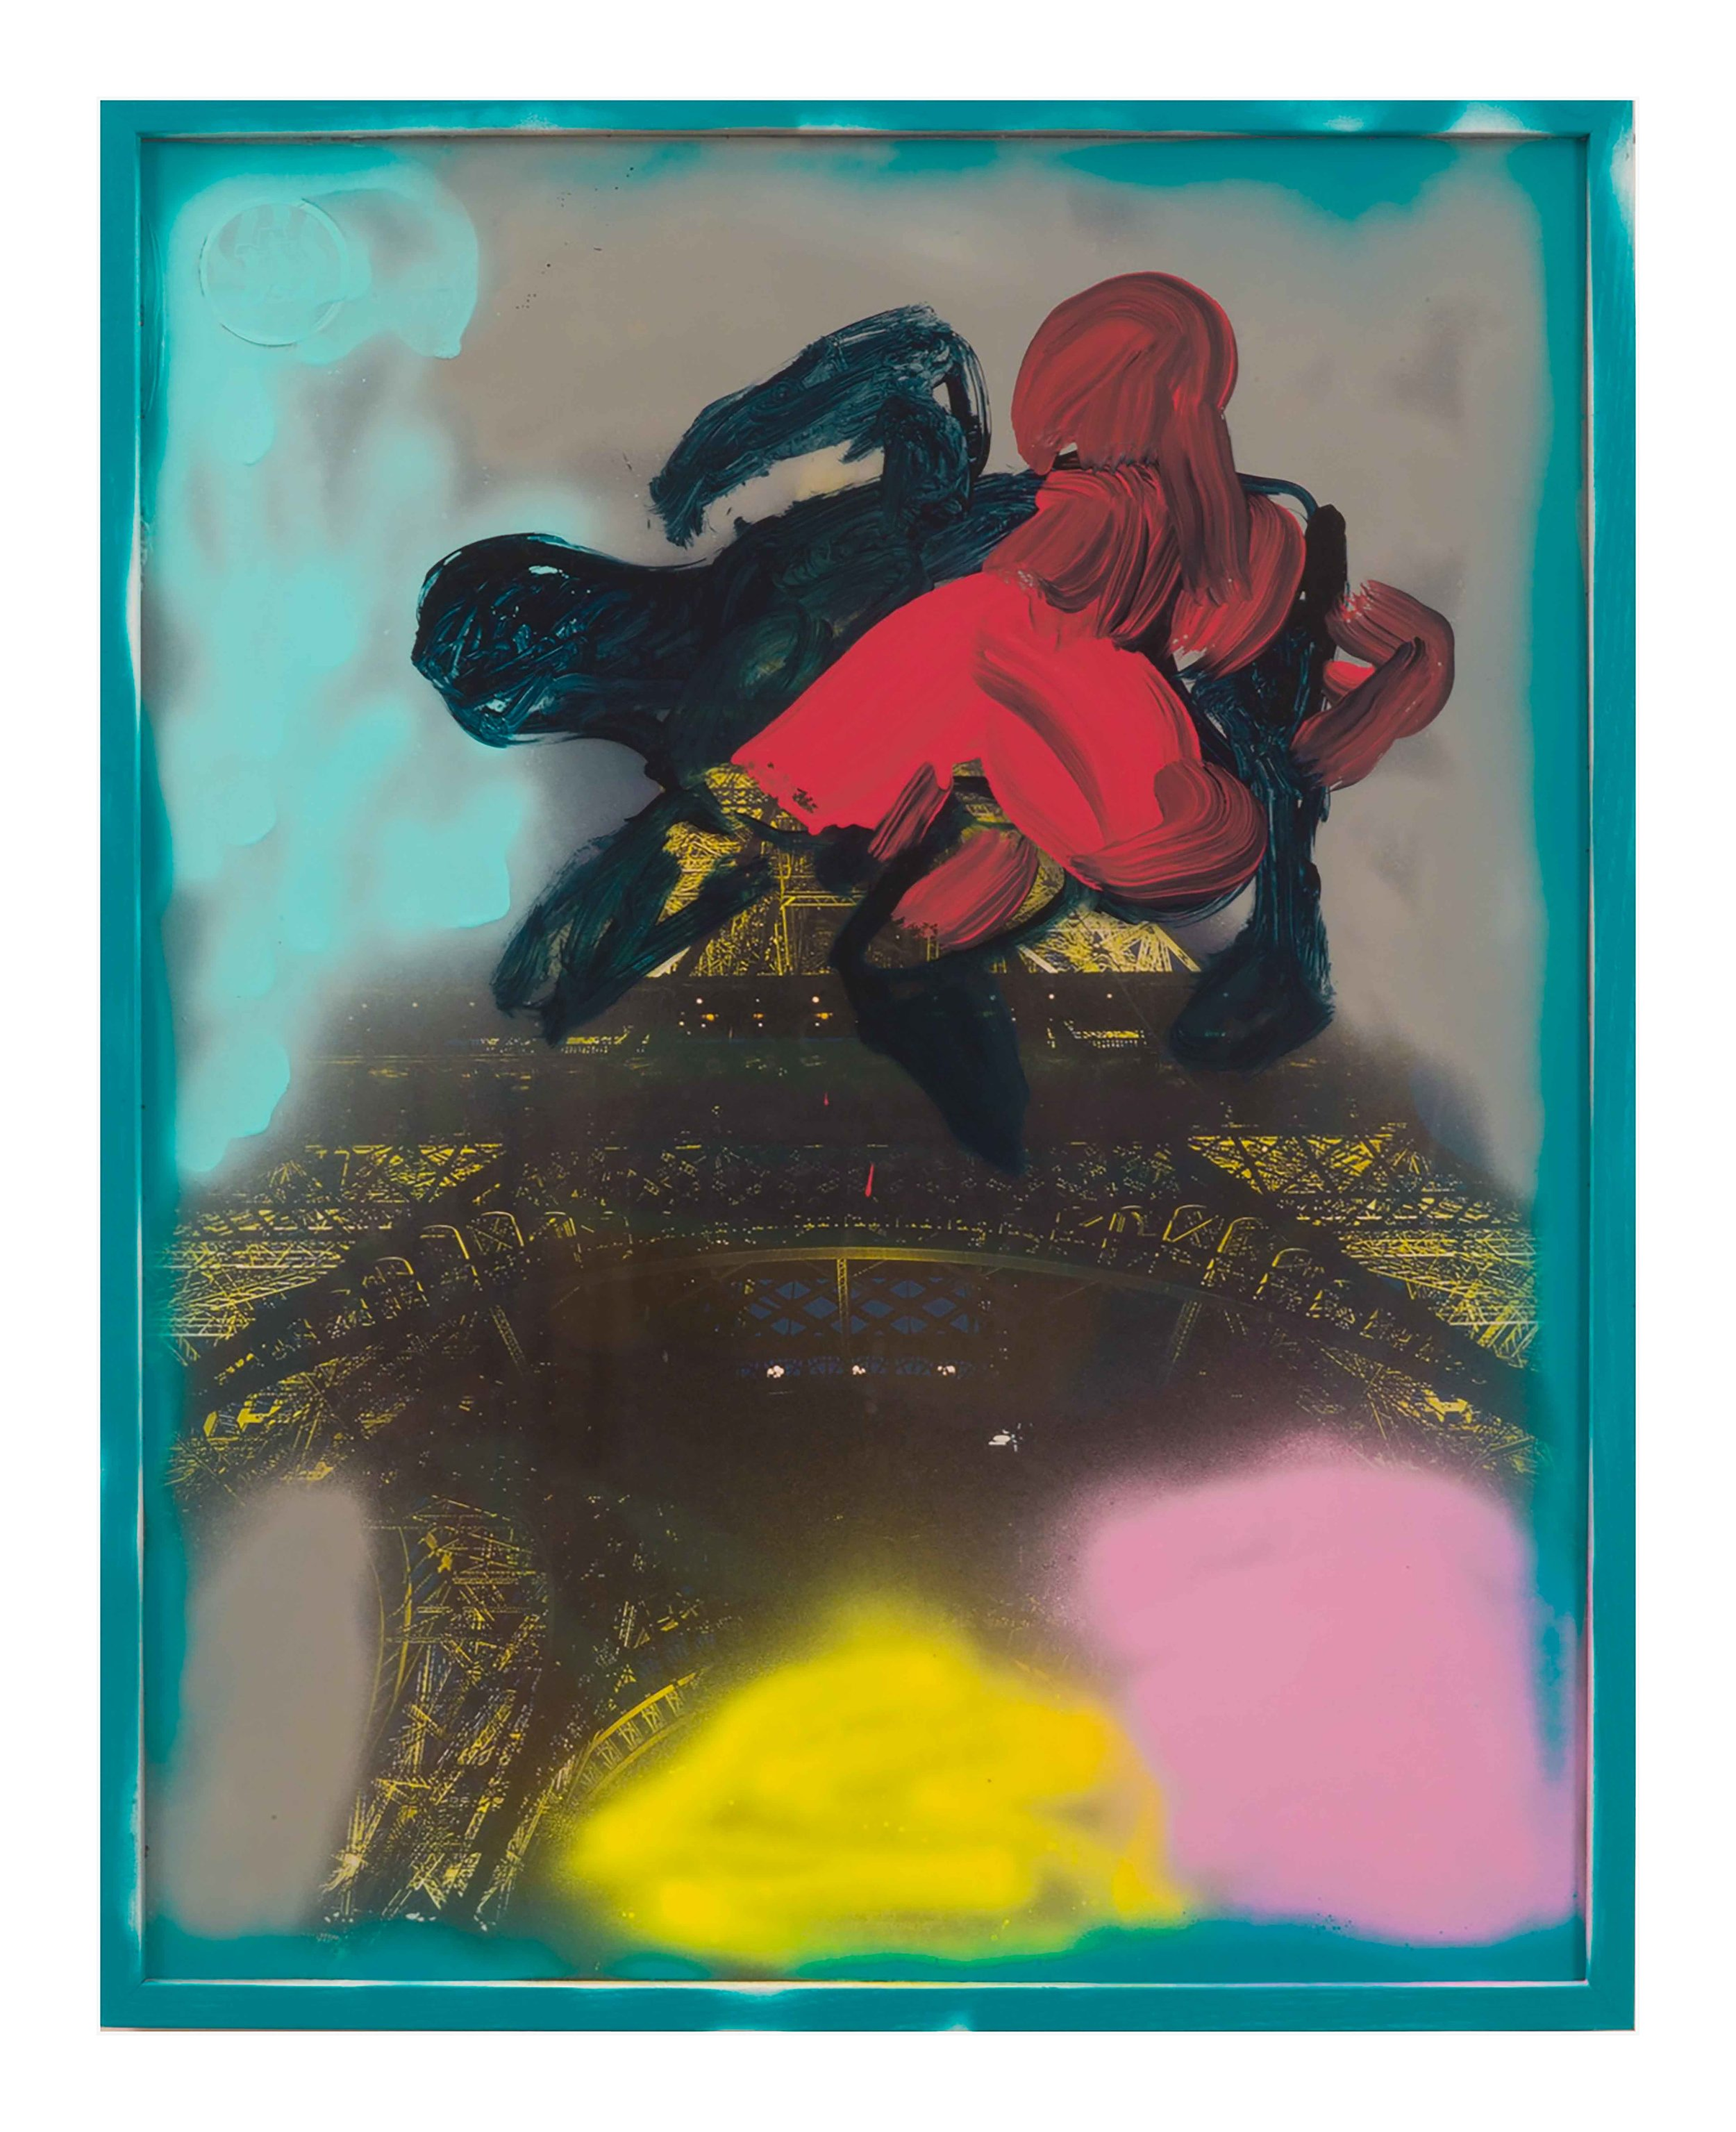 Drew Beattie and Ben Shepard  Fight in Paris   2015 acrylic and spray paint on framed poster 29 x 23 inches